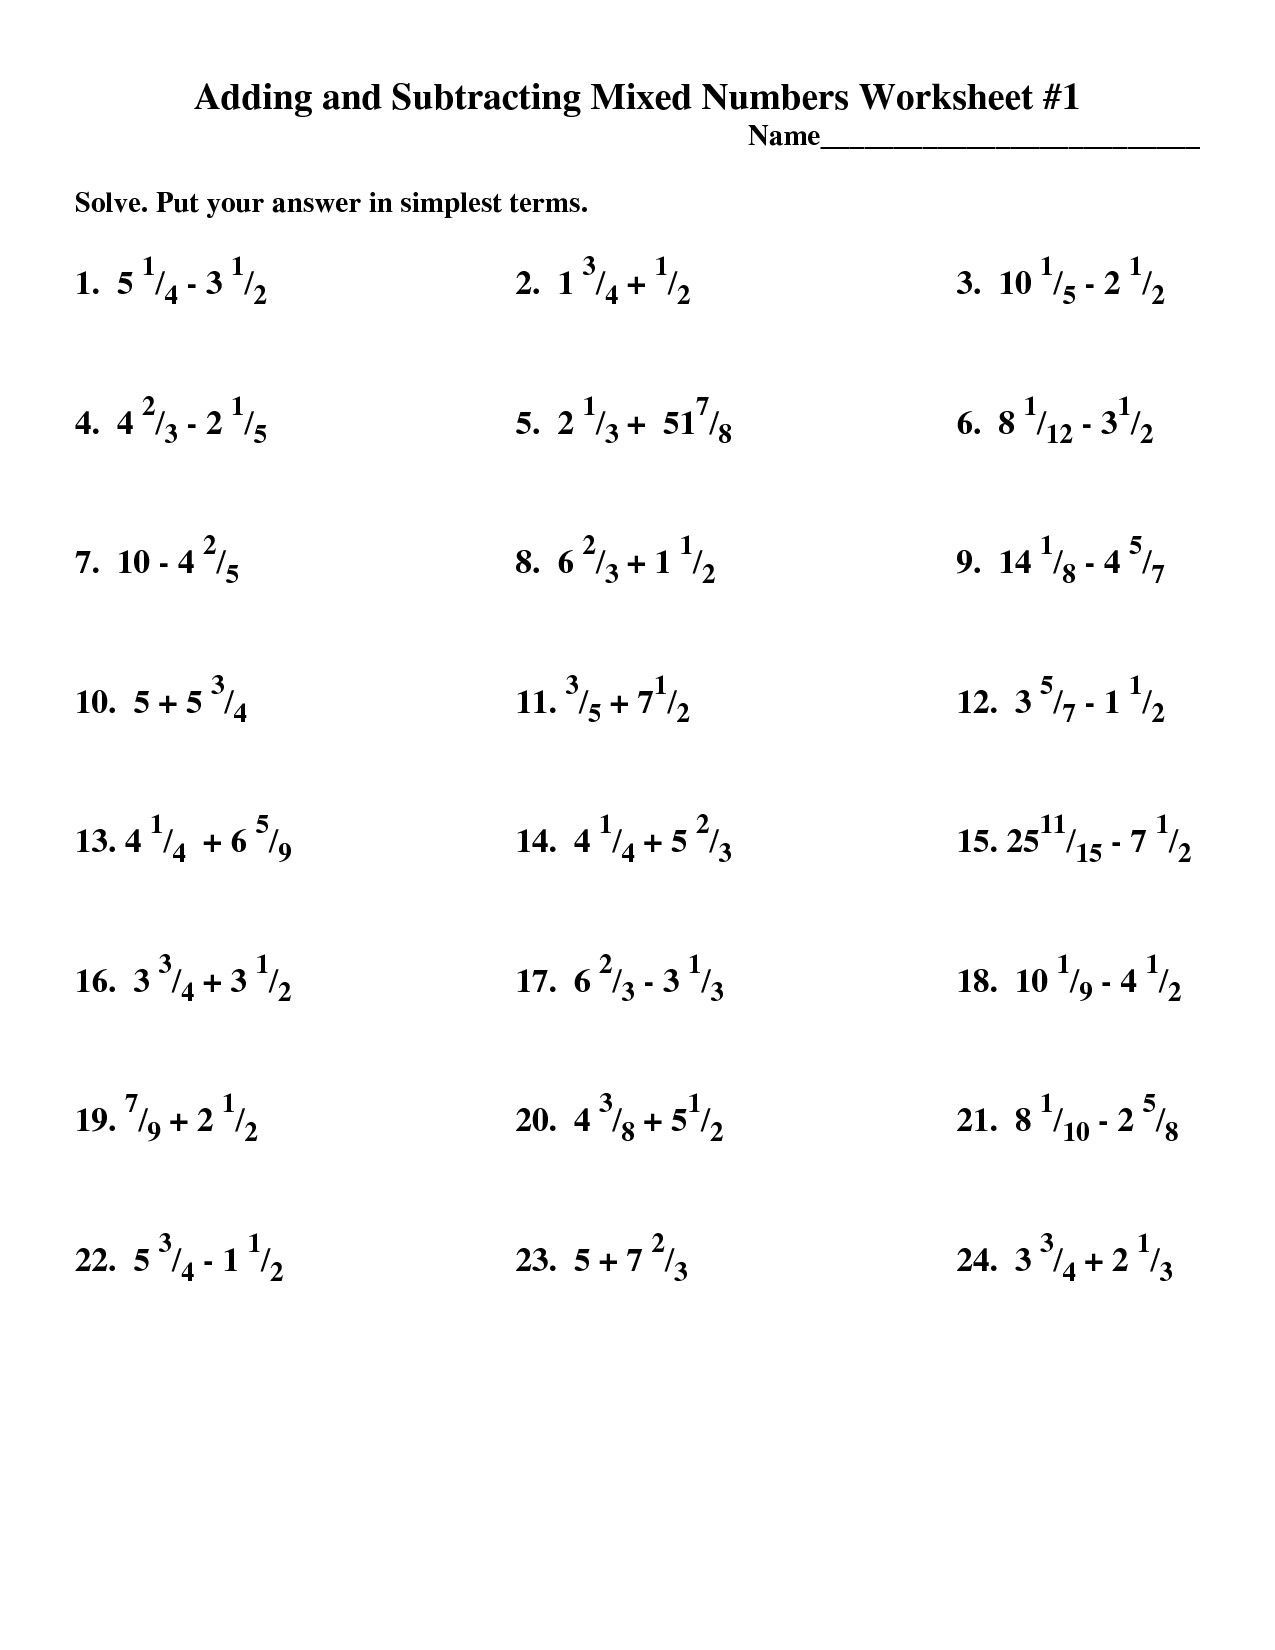 Adding Subtracting Multiplying Dividing Whole Numbers Worksheet Inspirationa Fractions D In 2021 Number Worksheets Negative Numbers Worksheet Multiplying Mixed Numbers